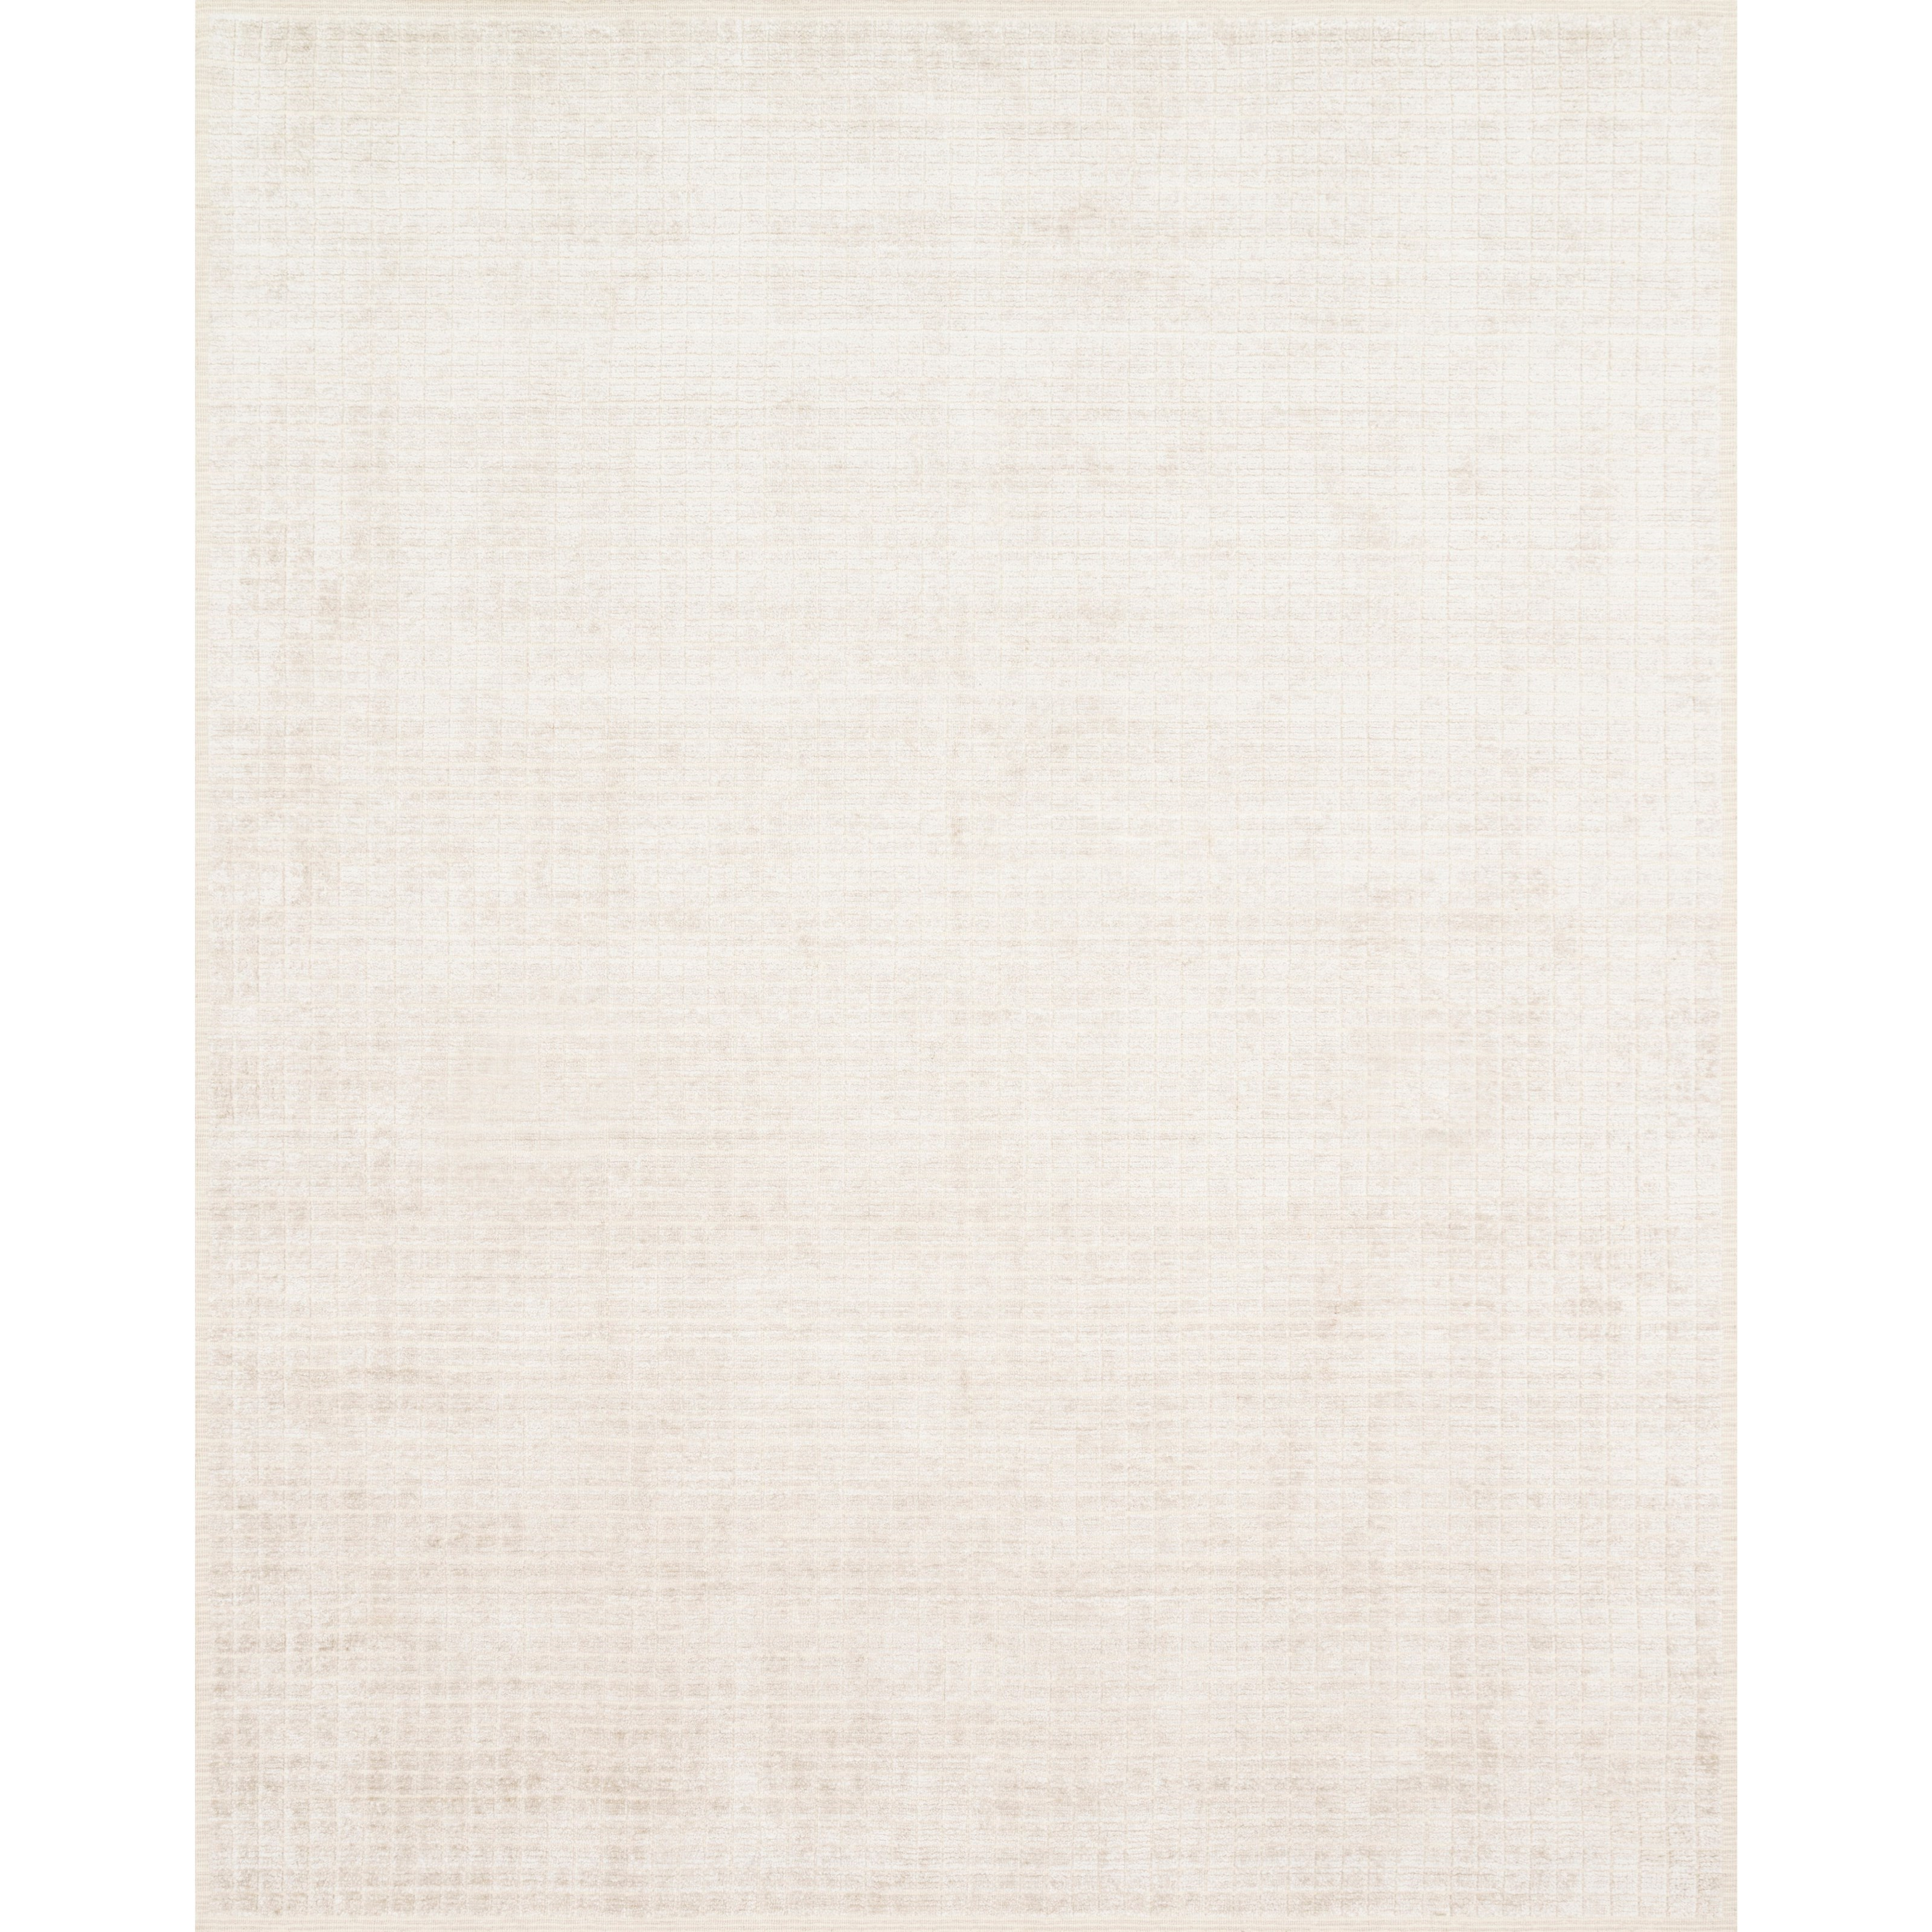 "Beverly 4'0"" x 6'0"" Natural Rug by Loloi Rugs at Virginia Furniture Market"